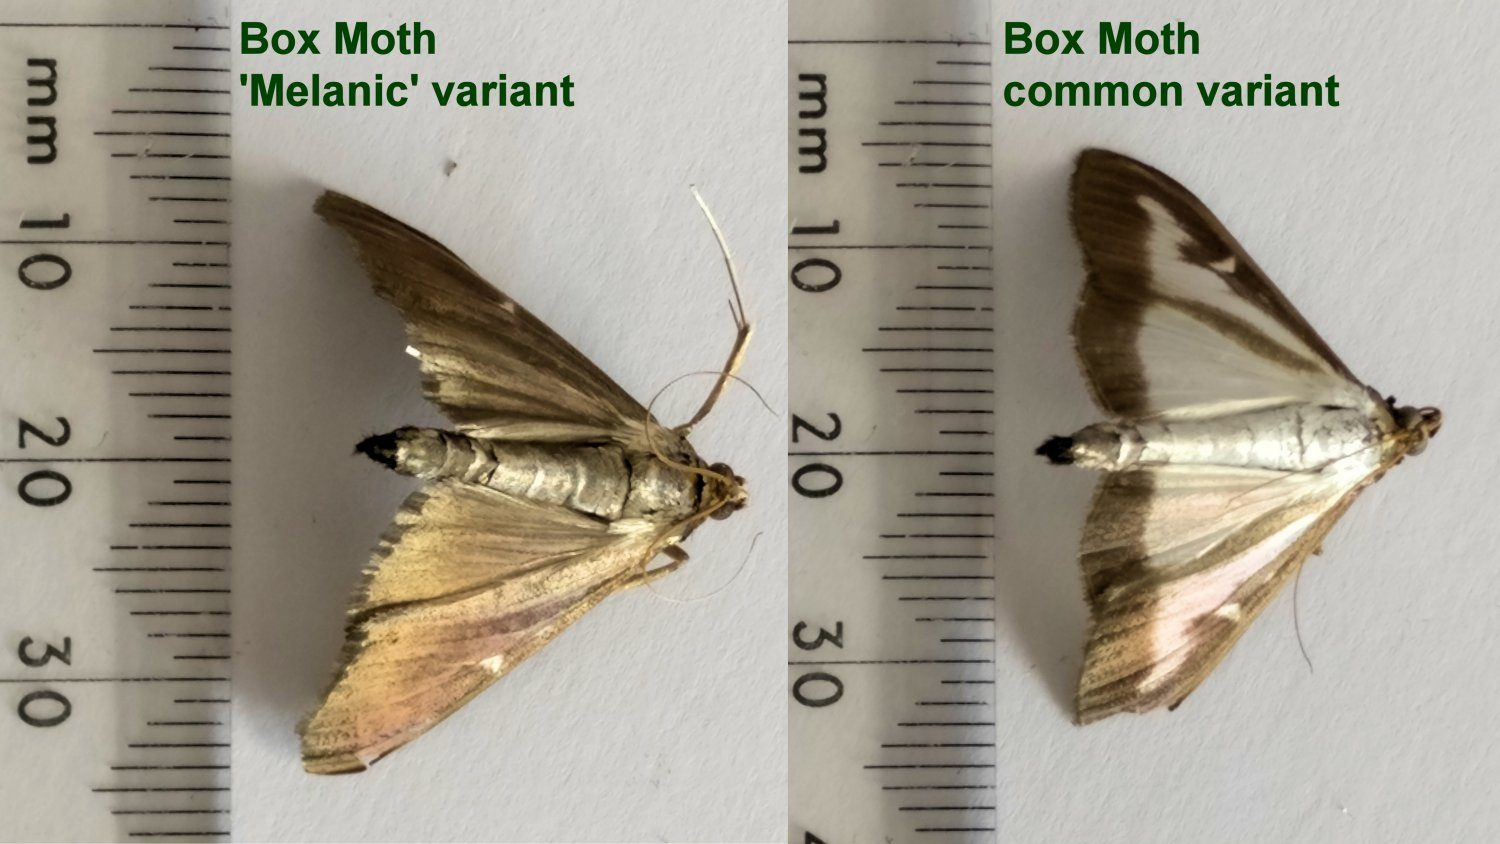 The two different variants of the box tree moth